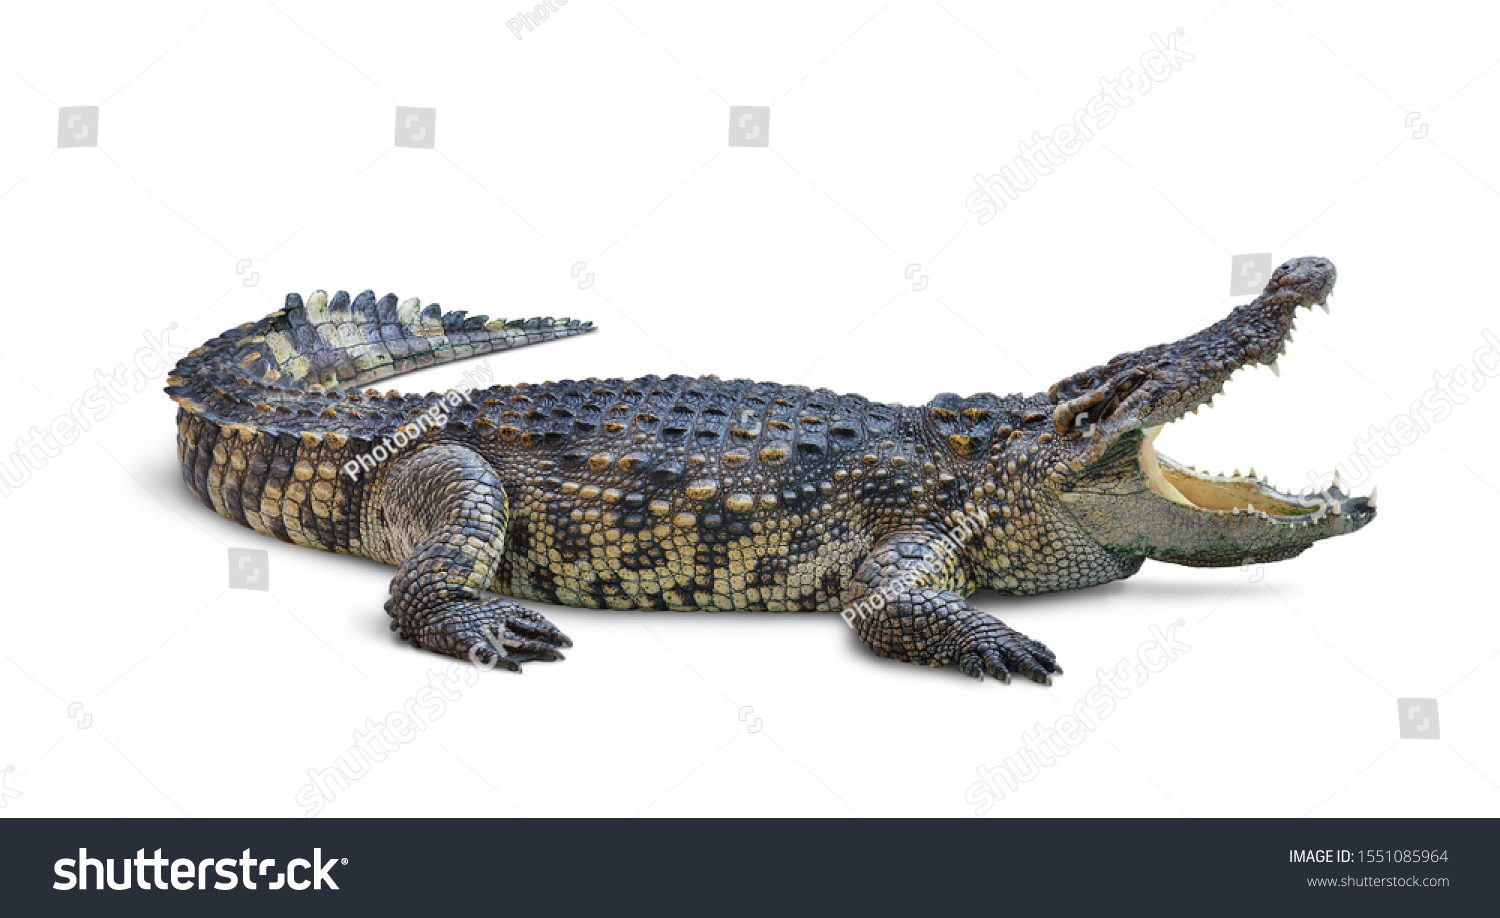 Large Crocodile open mouth isolated on white background. Clipping path. #1551085964